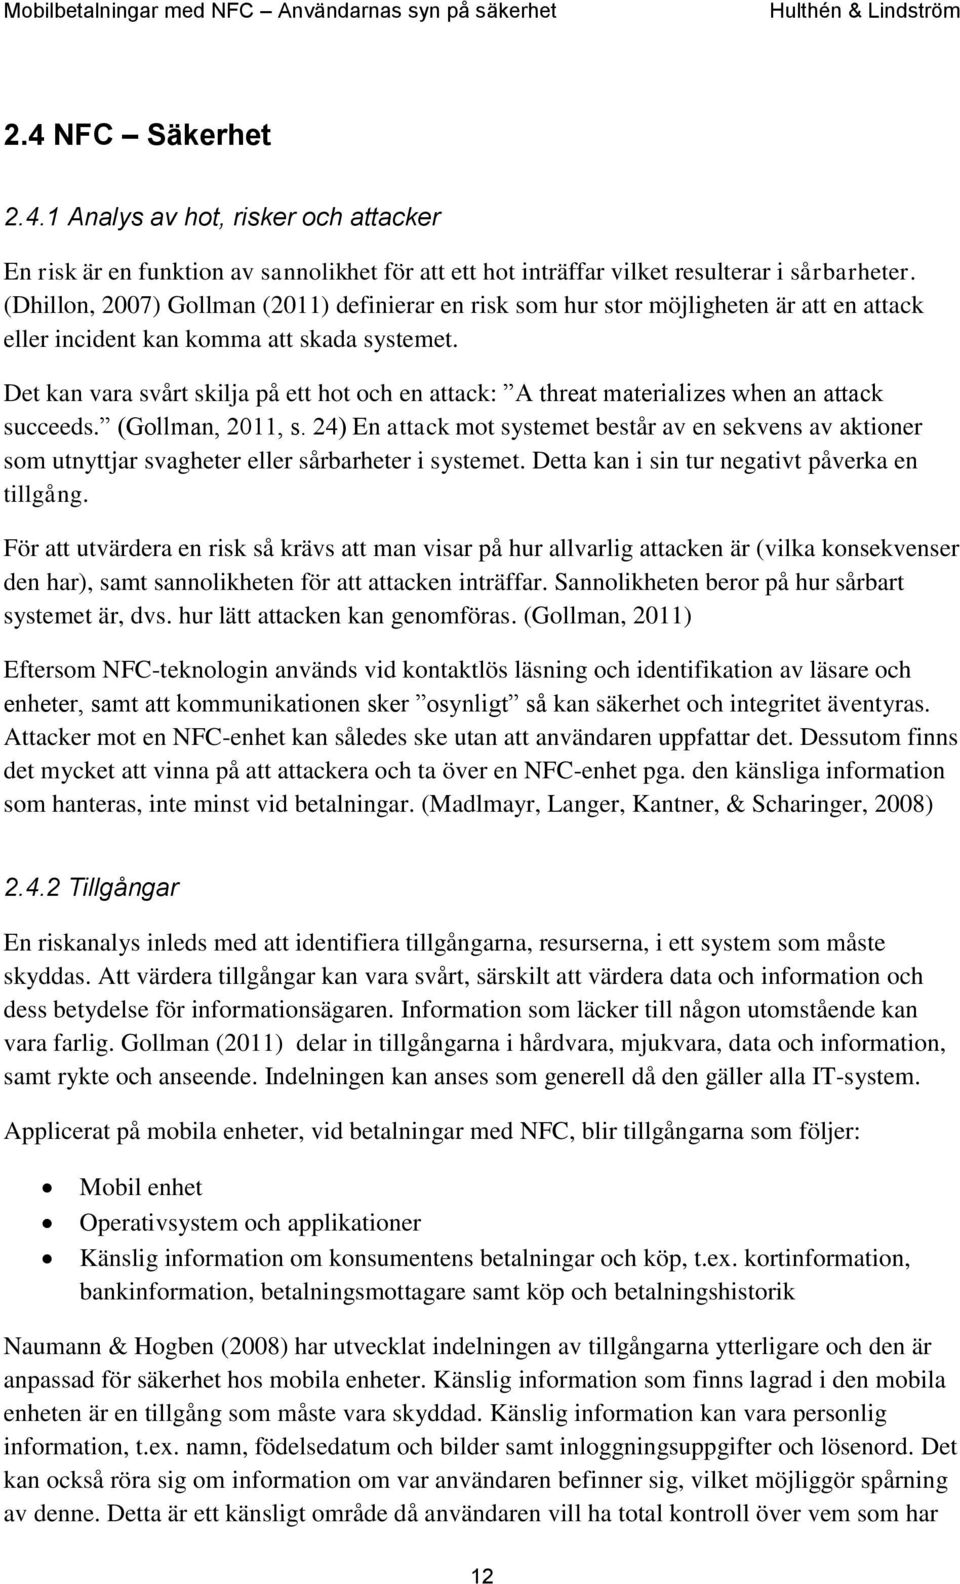 Det kan vara svårt skilja på ett hot och en attack: A threat materializes when an attack succeeds. (Gollman, 2011, s.